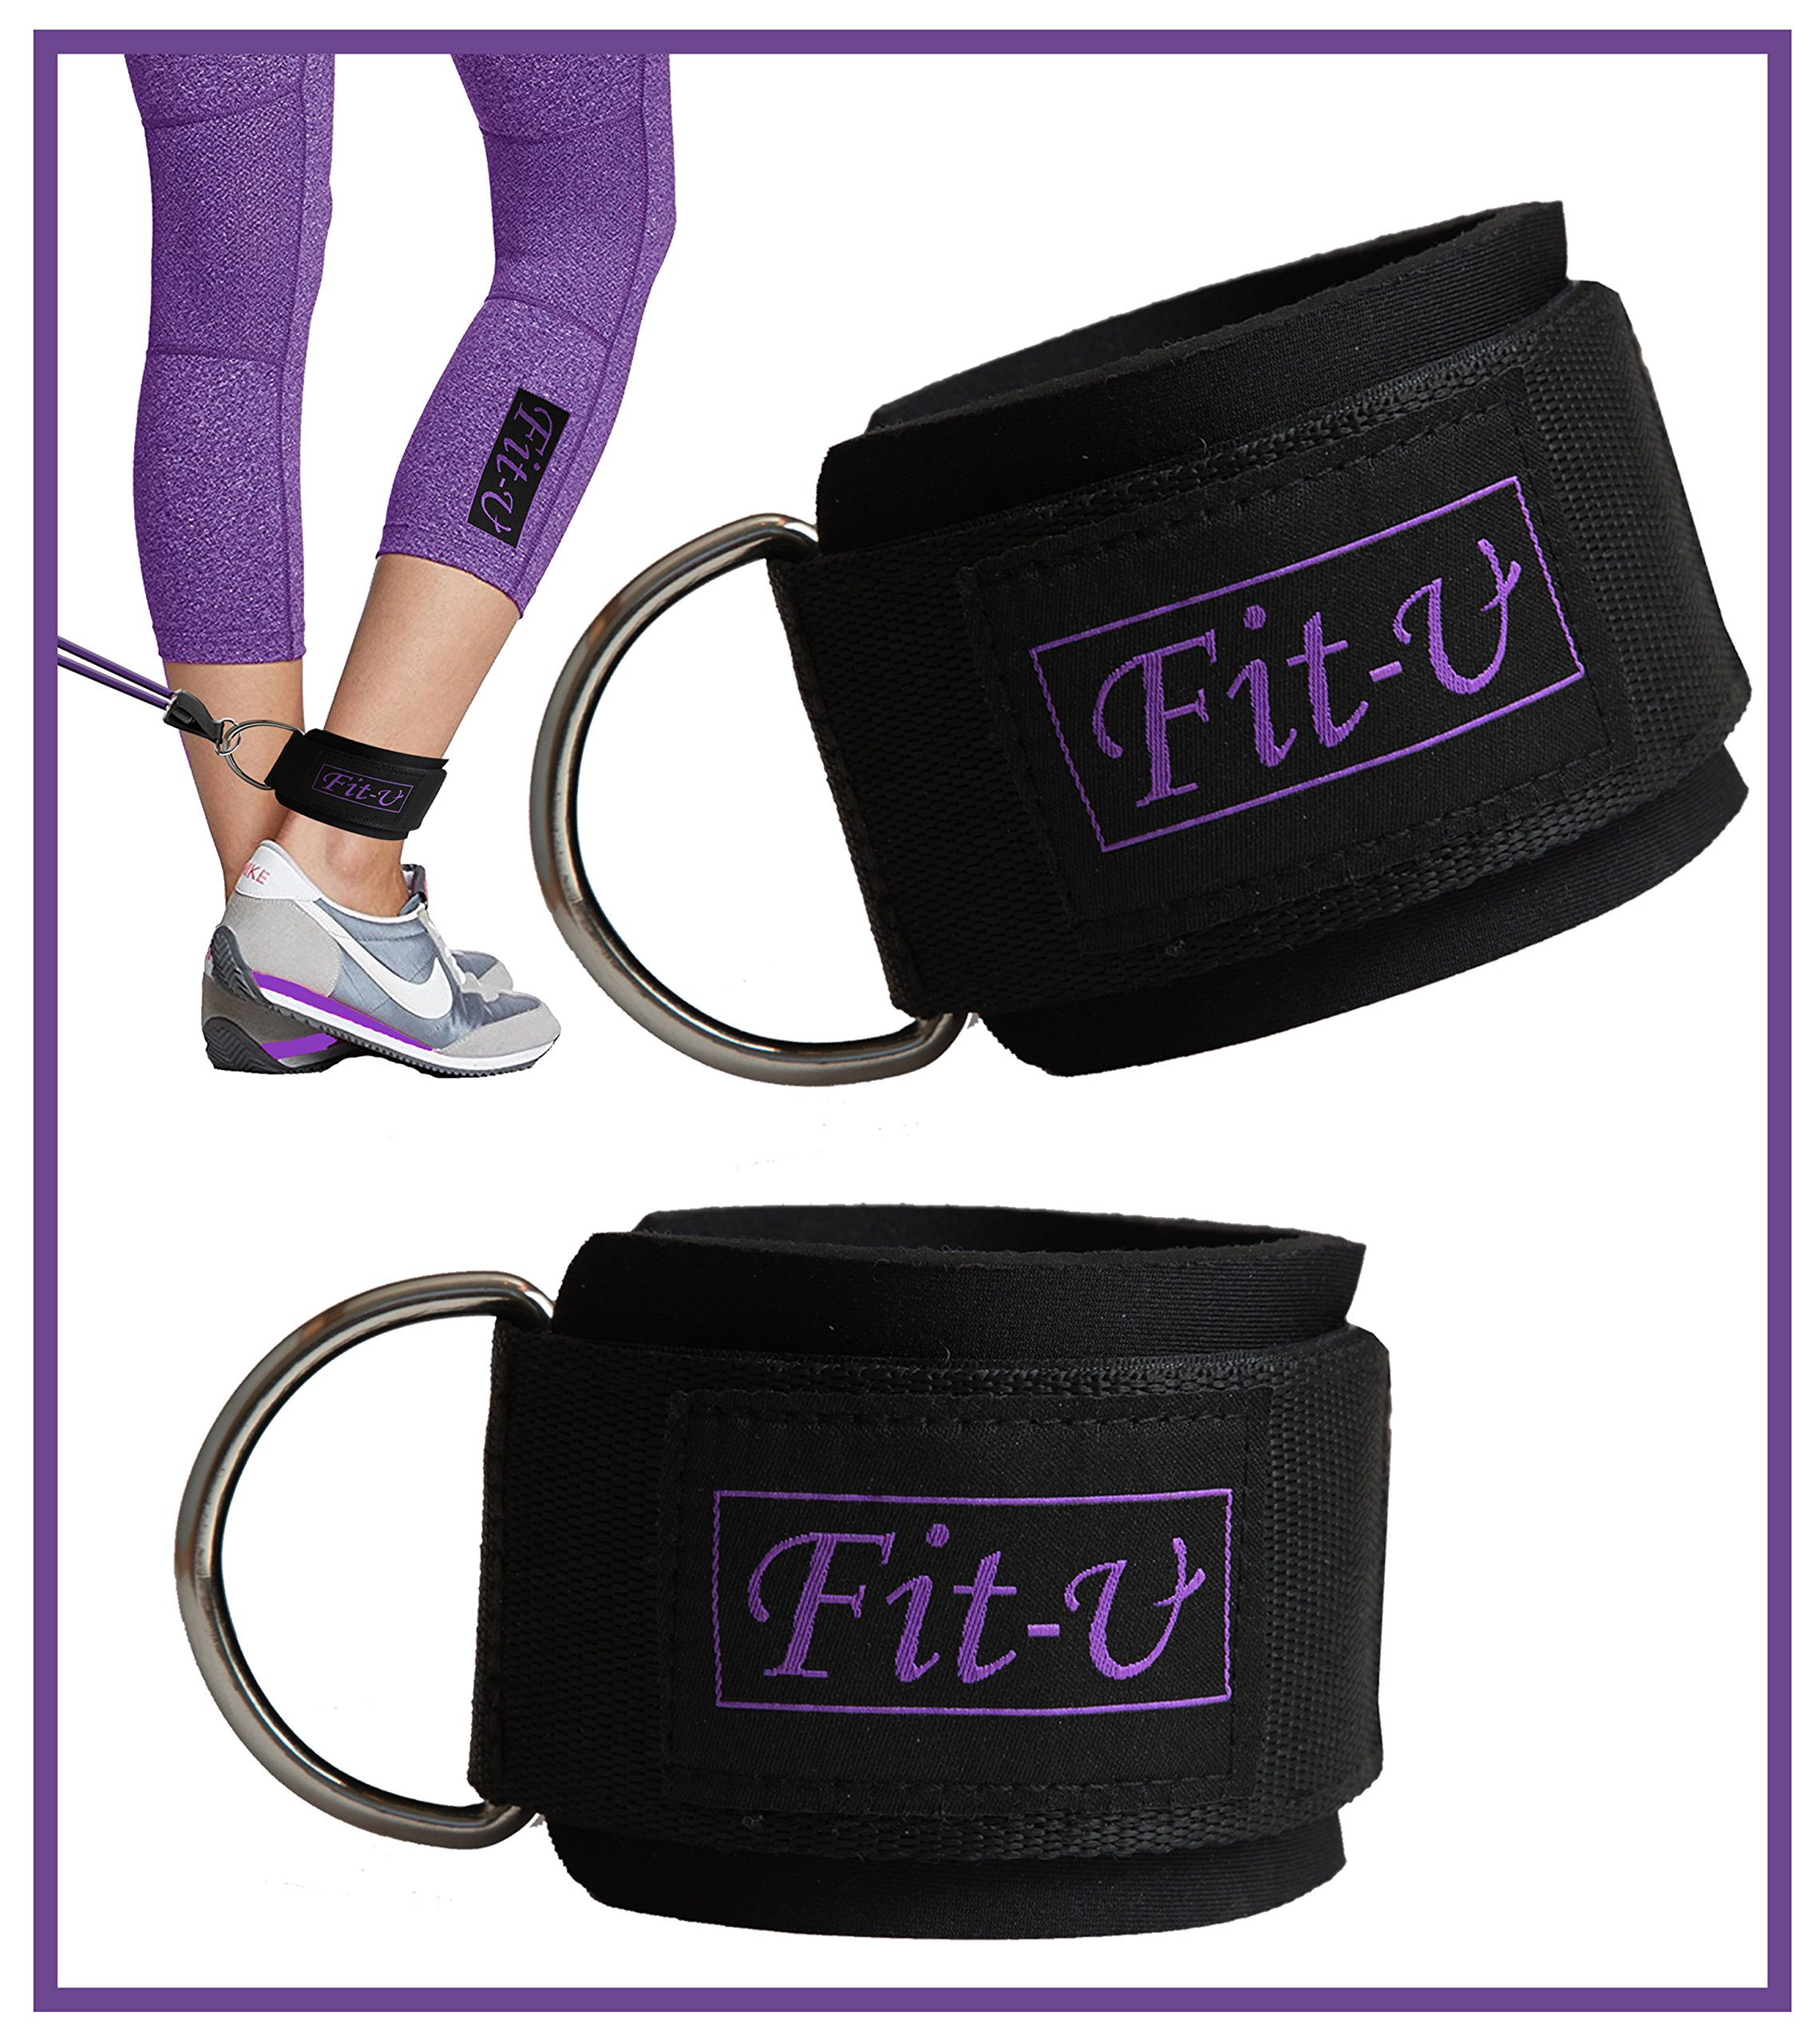 Padded Ankle Strap by FIT-U (2 – Pack) Perfect for Cable Machine Workout Fitness Cuffs for Ab, Glut & Leg Fit for Women & Men Weights ExercisesPlus a Beautiful Purple Bag